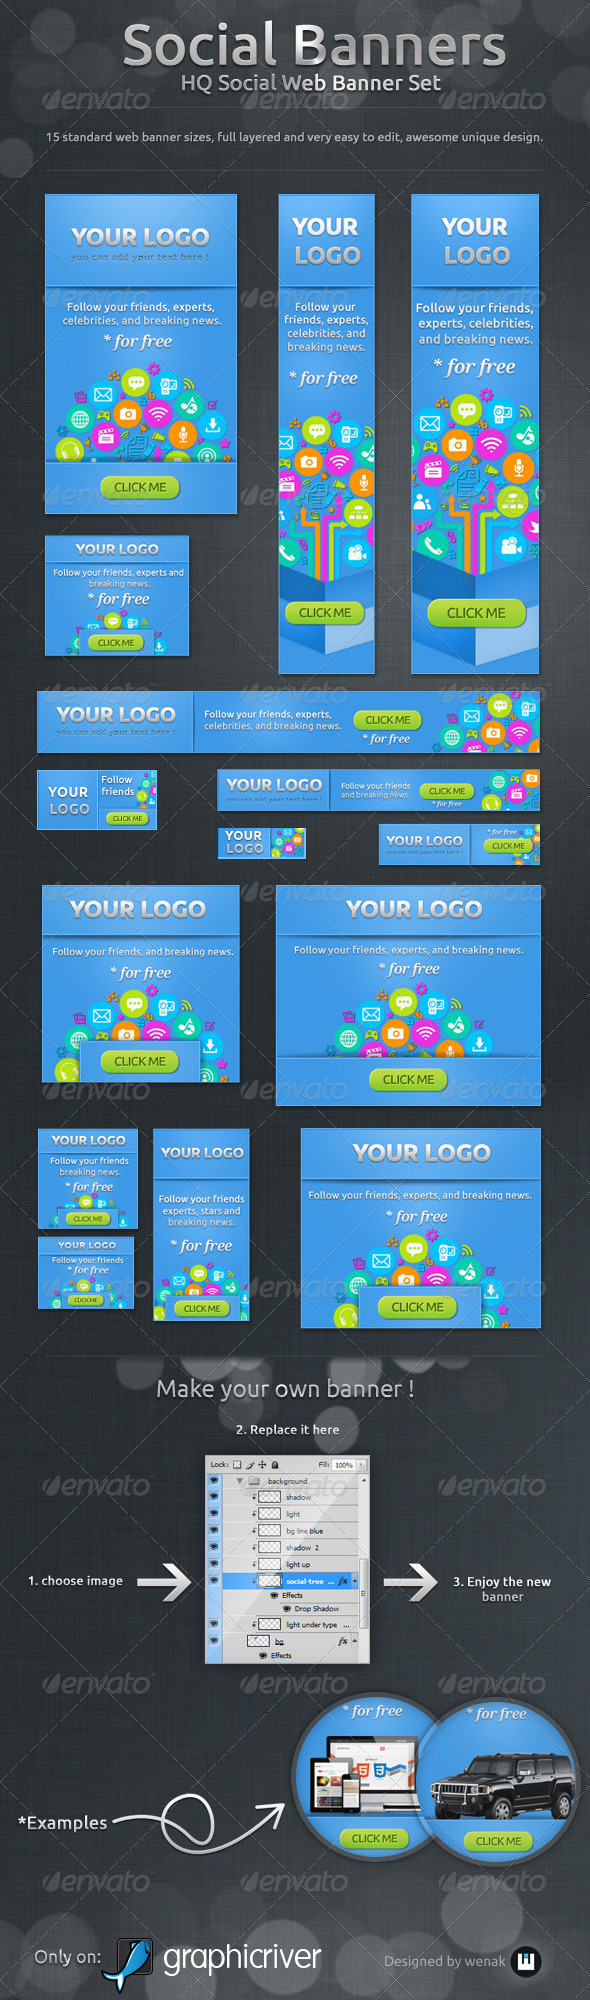 Social Banners - Social Web Banner Set - Banners & Ads Web Elements